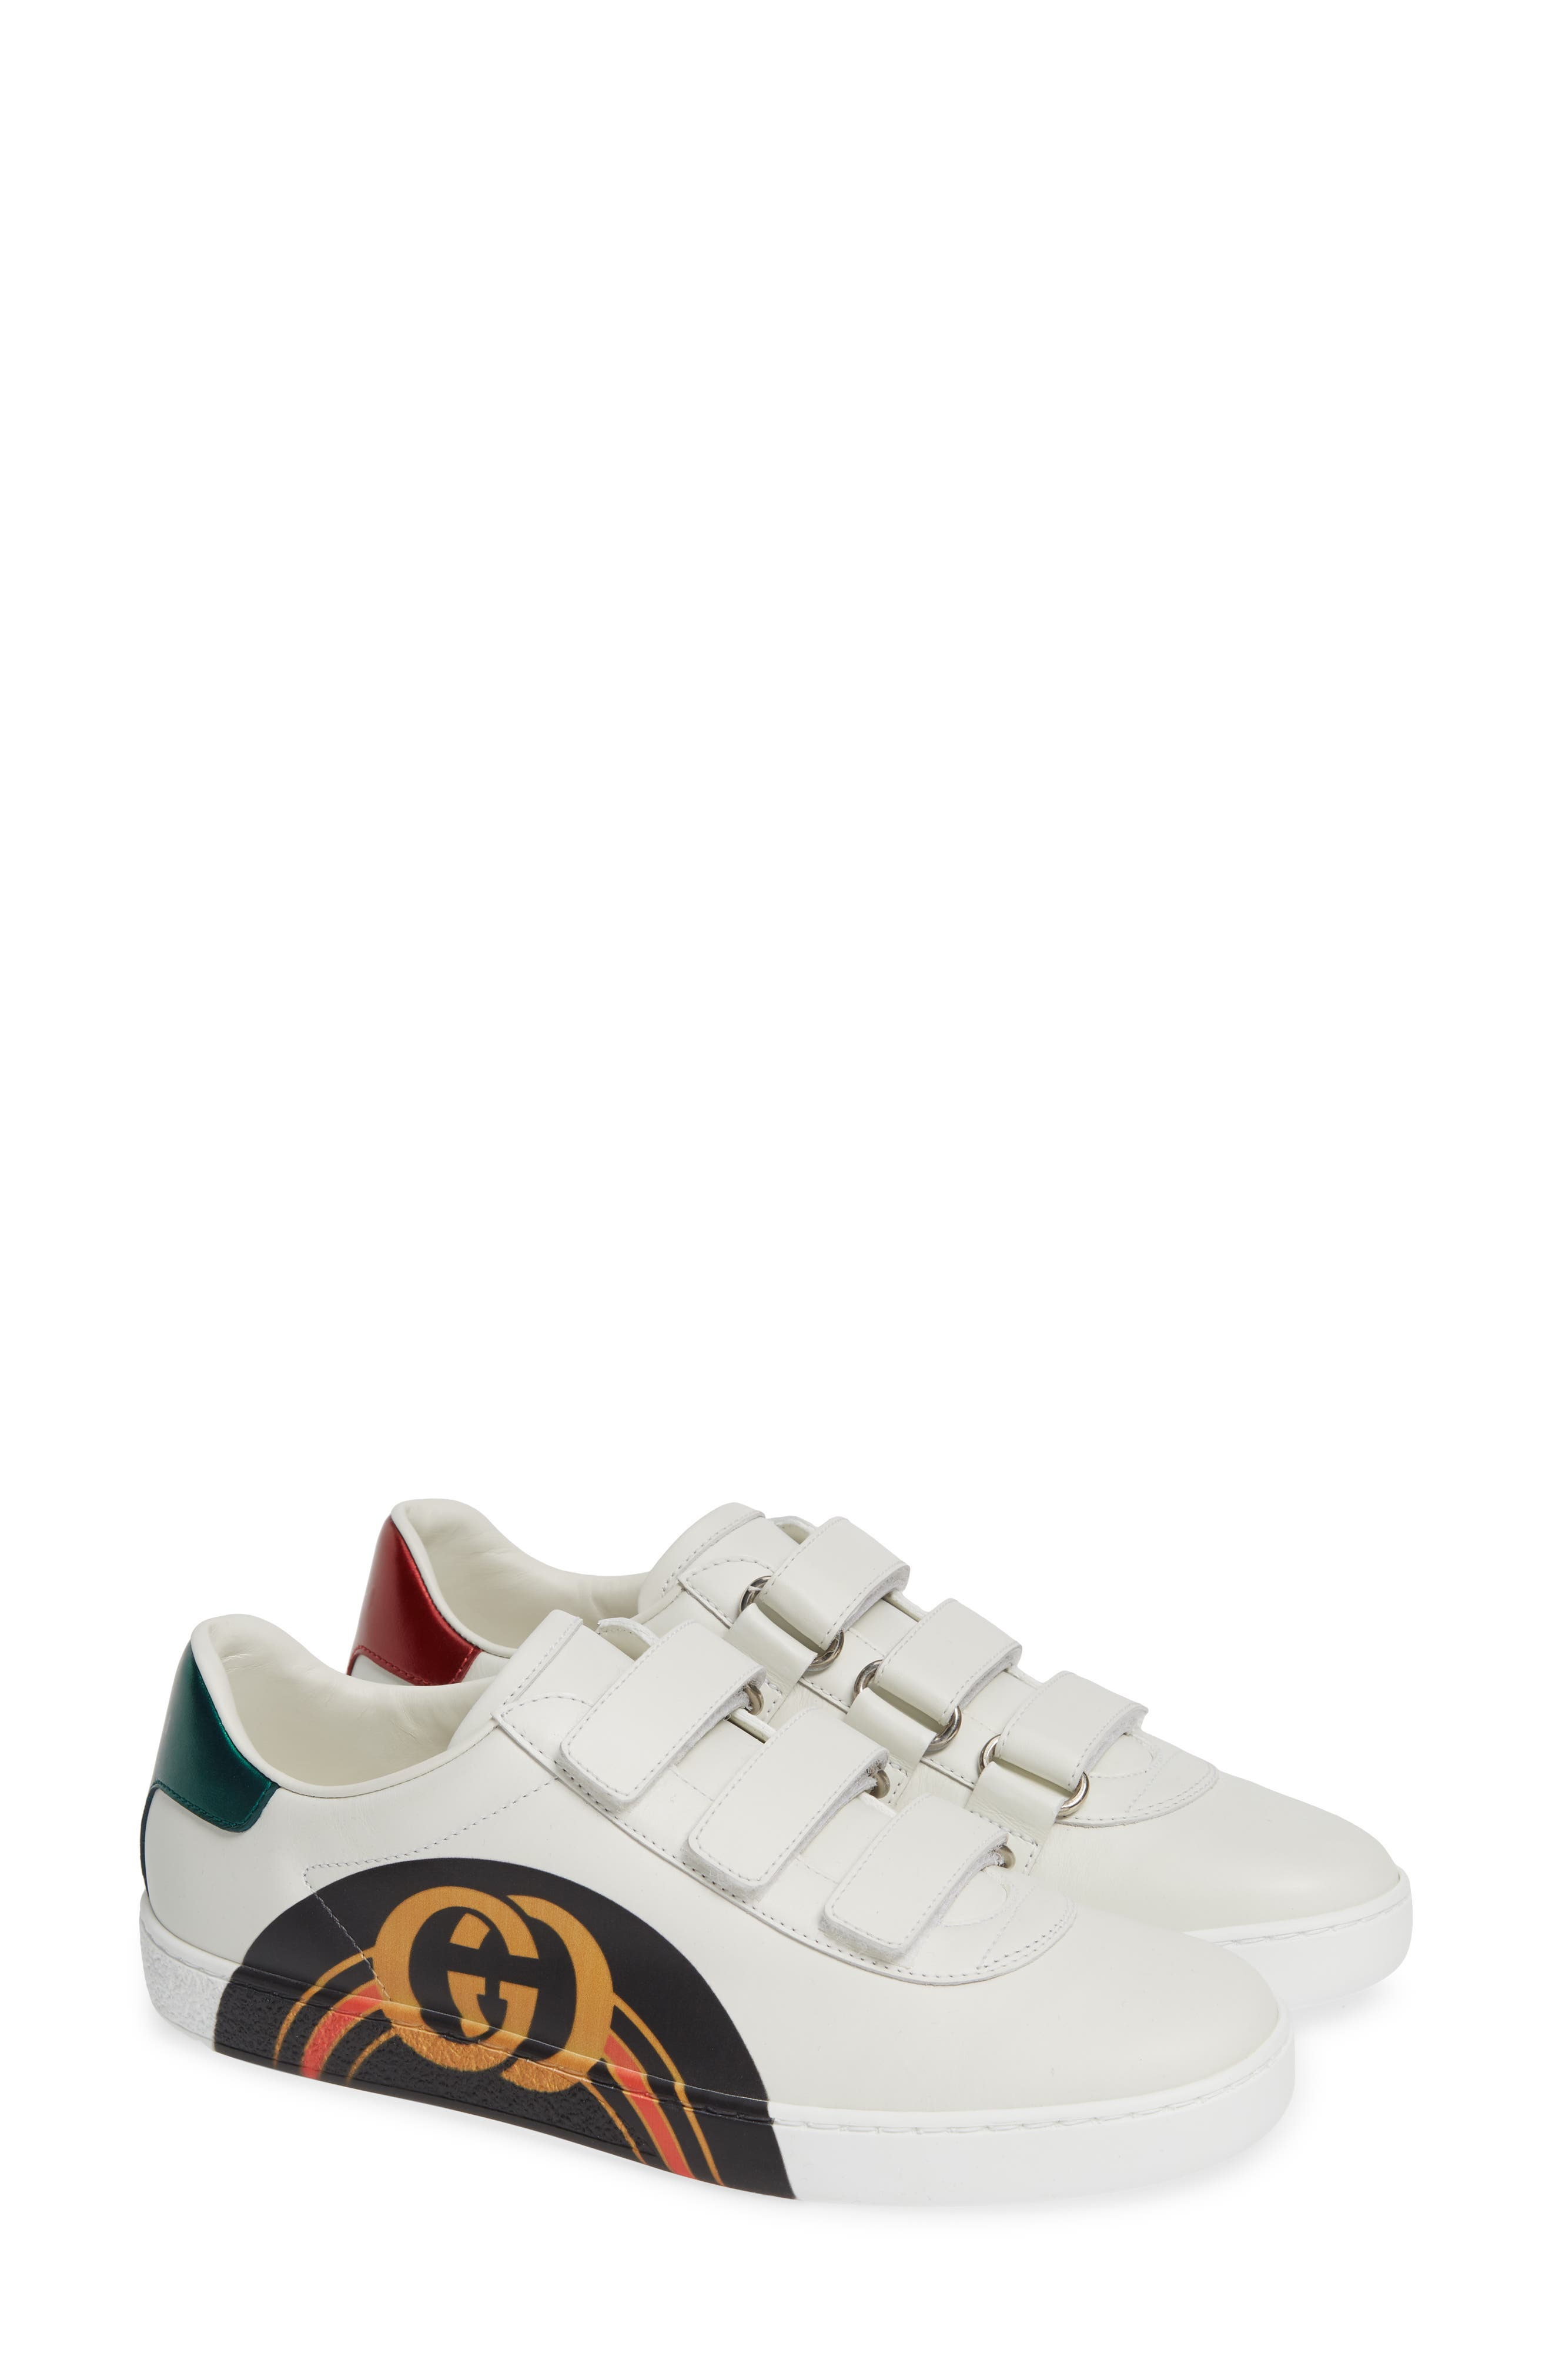 GUCCI, New Ace Sneaker, Main thumbnail 1, color, WHITE